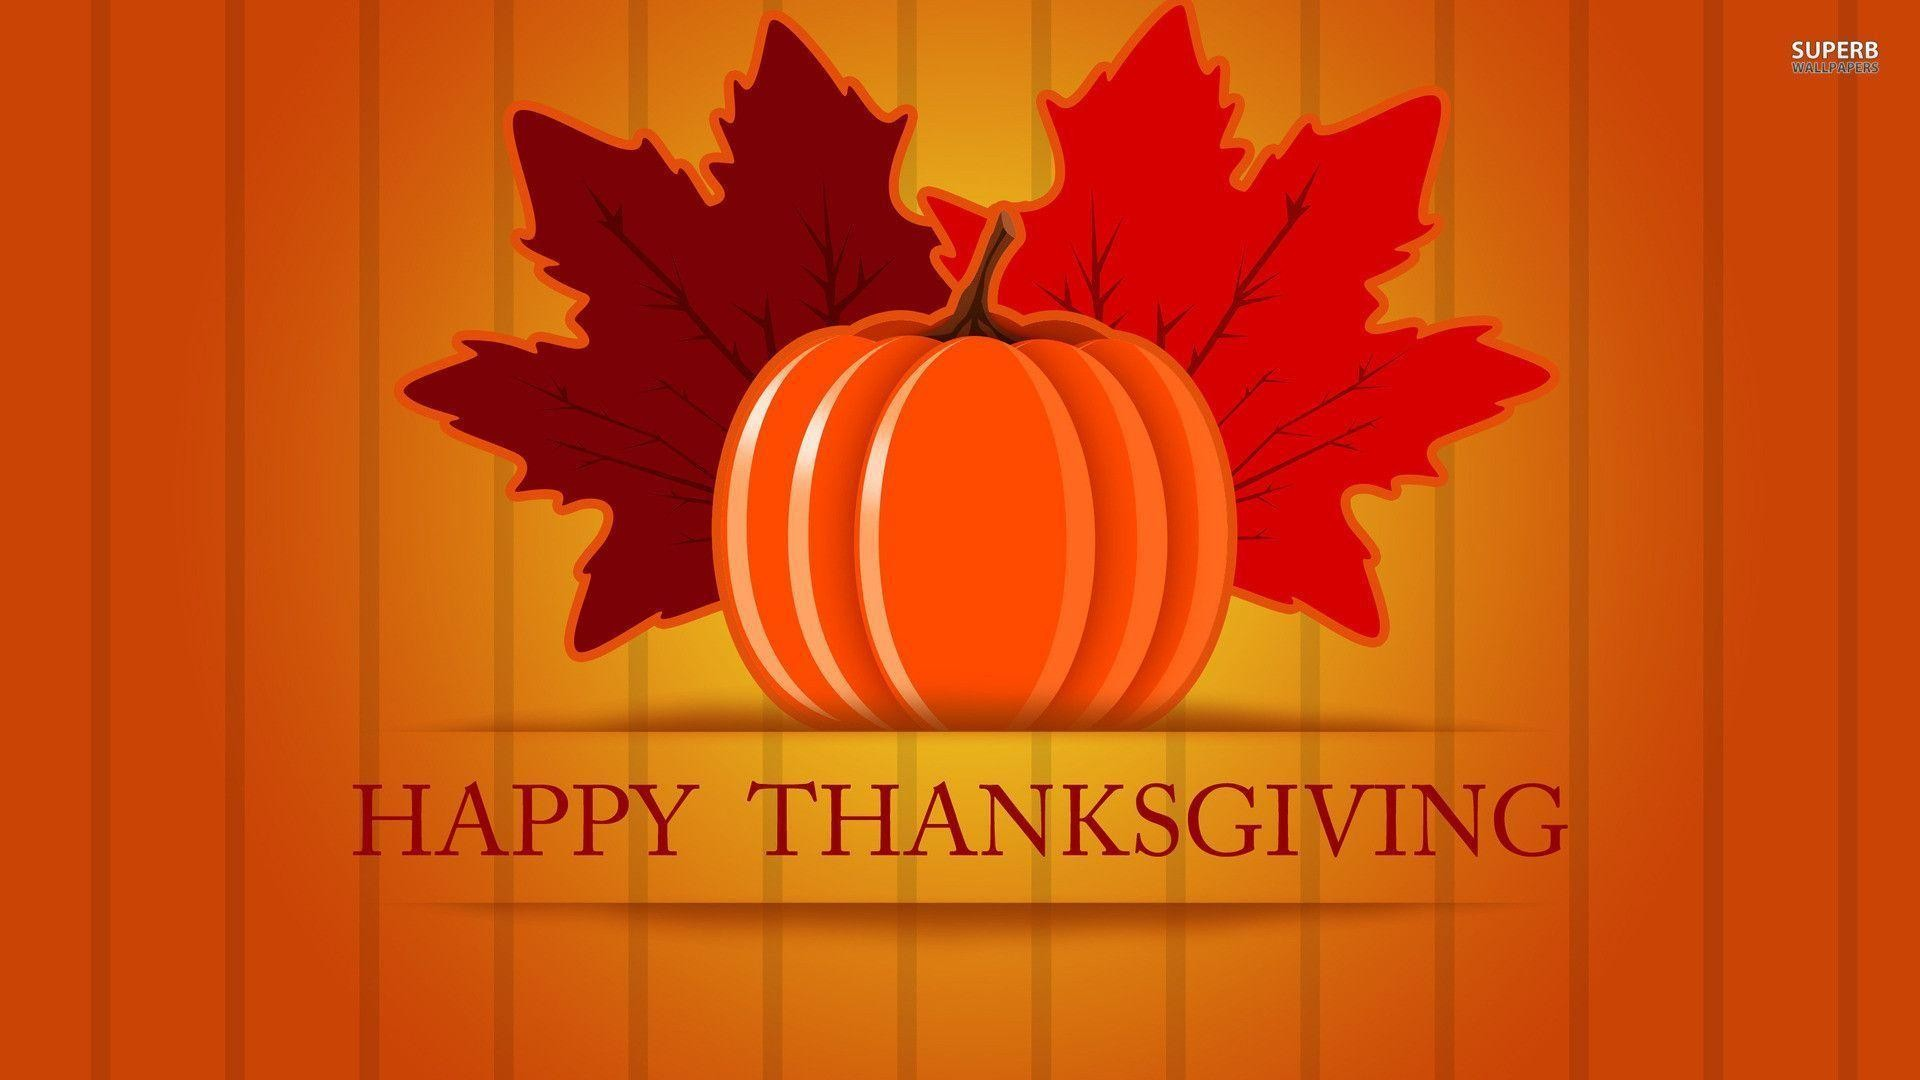 Happy Thanksgiving wallpaper – Holiday wallpapers – #